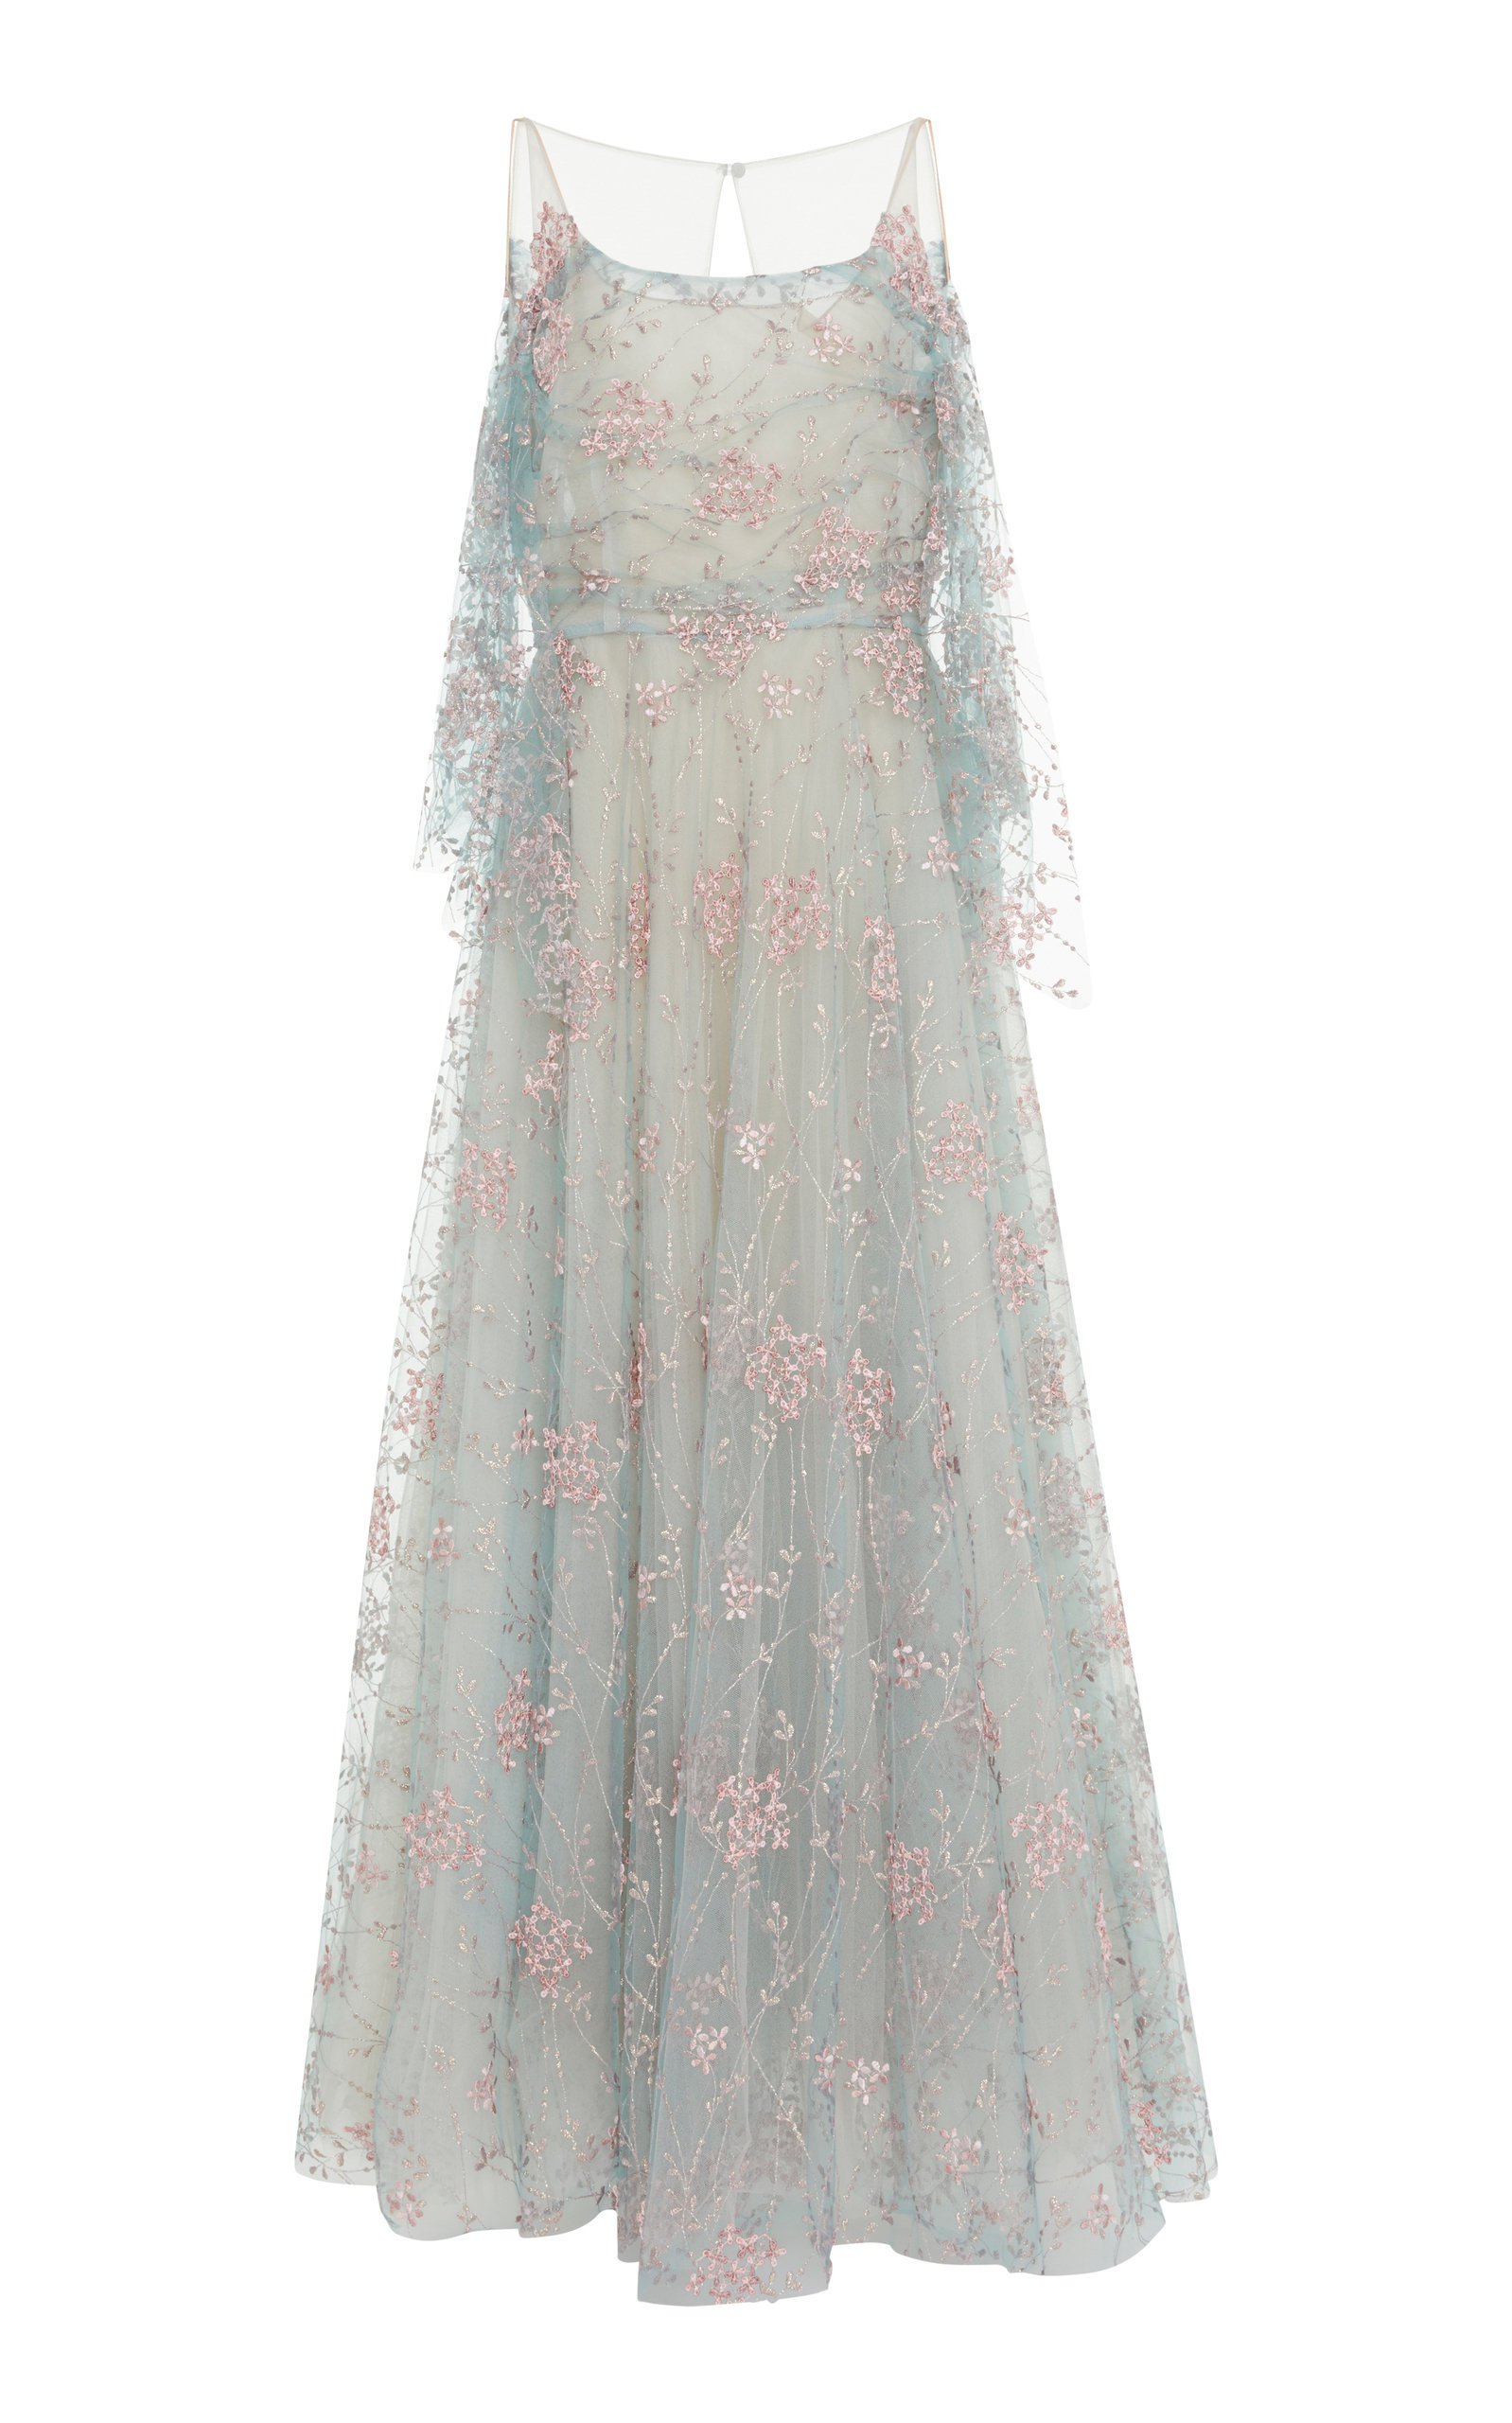 Tulle Embroidered Floral Ball Gown by Luisa Beccaria   Moda Operandi